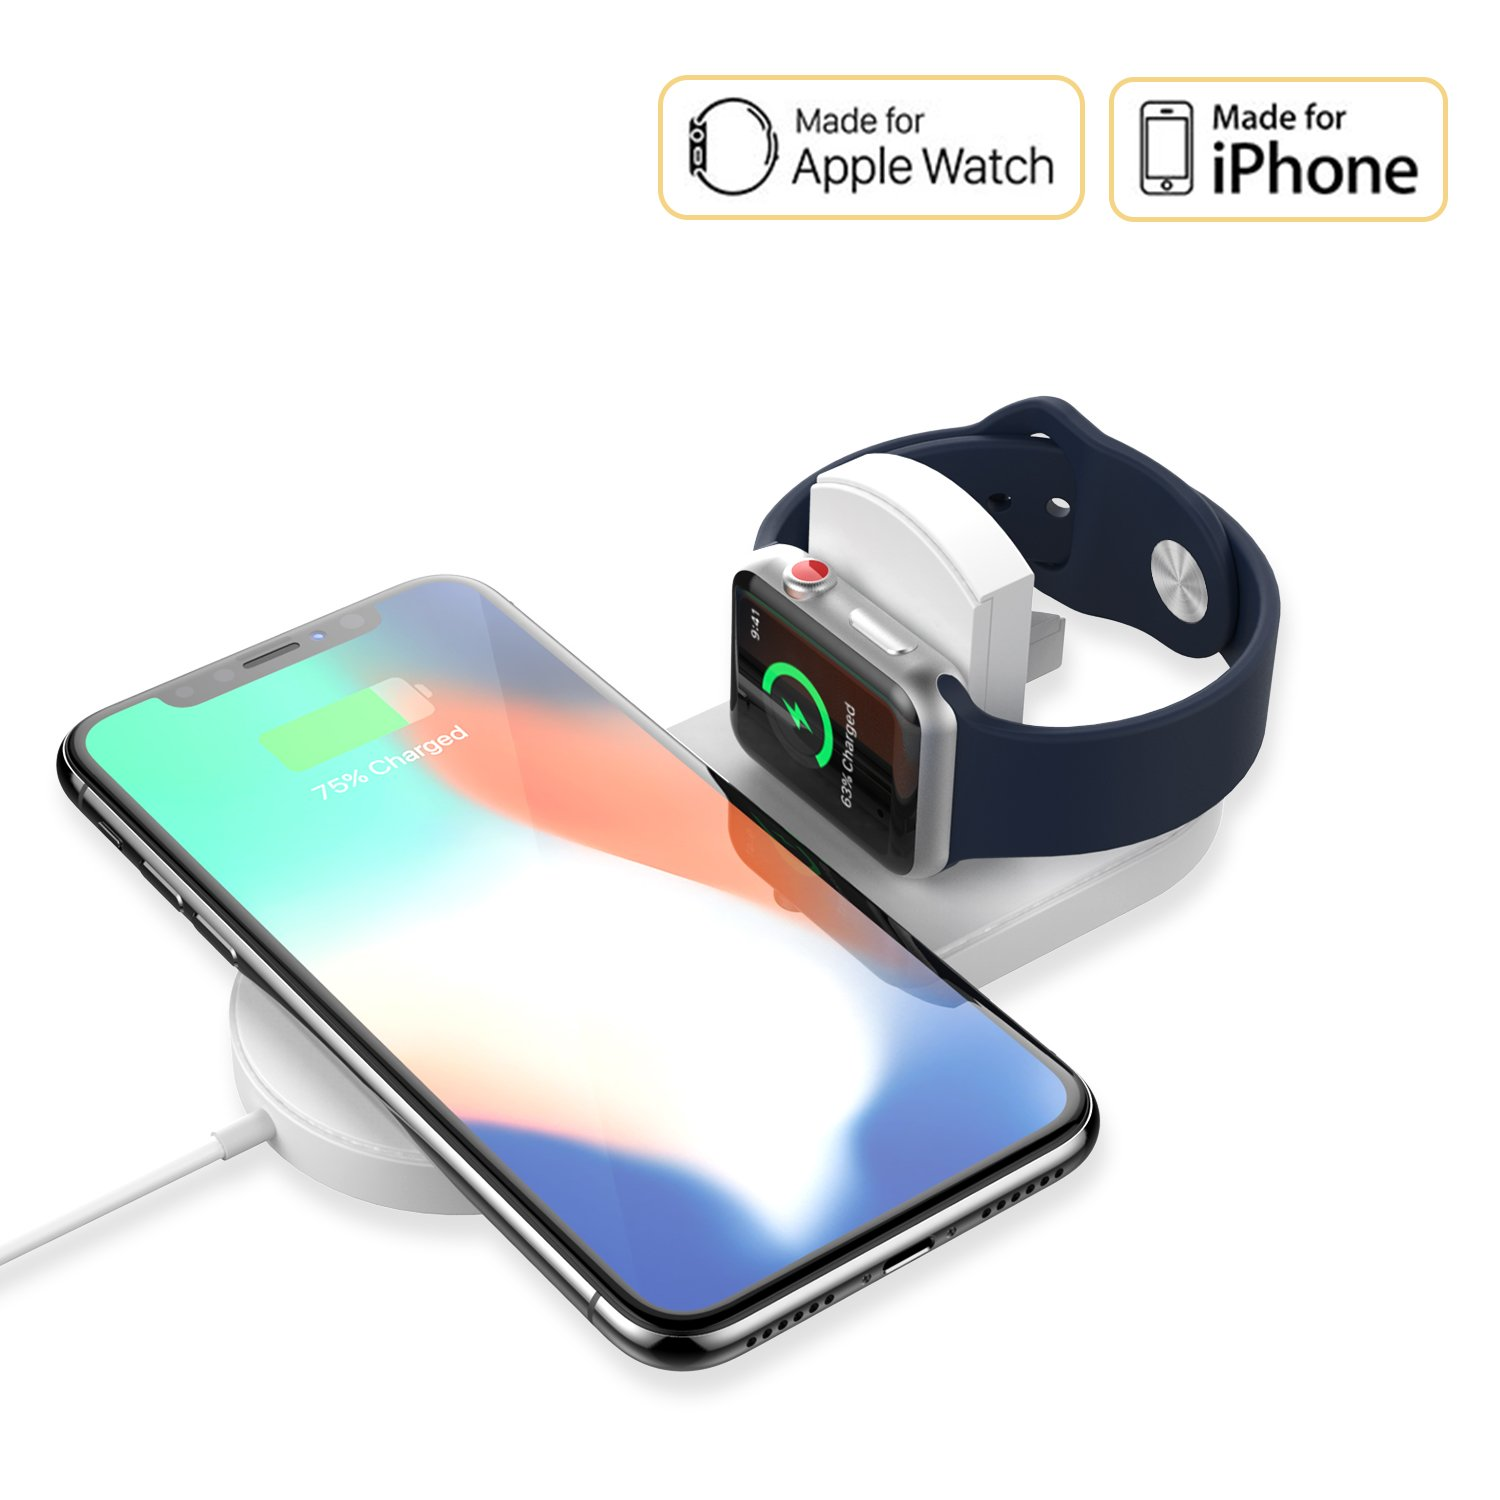 Apple Watch Charger – EXCITINGPOWER Ultra Slim Wireless Charger, Super Compact Wireless Charger for iPhone x & Apple Watch Series 2/3, Samsung Galaxy S8/S9 plus, 2 in 1 Qi Wireless Charger Pad